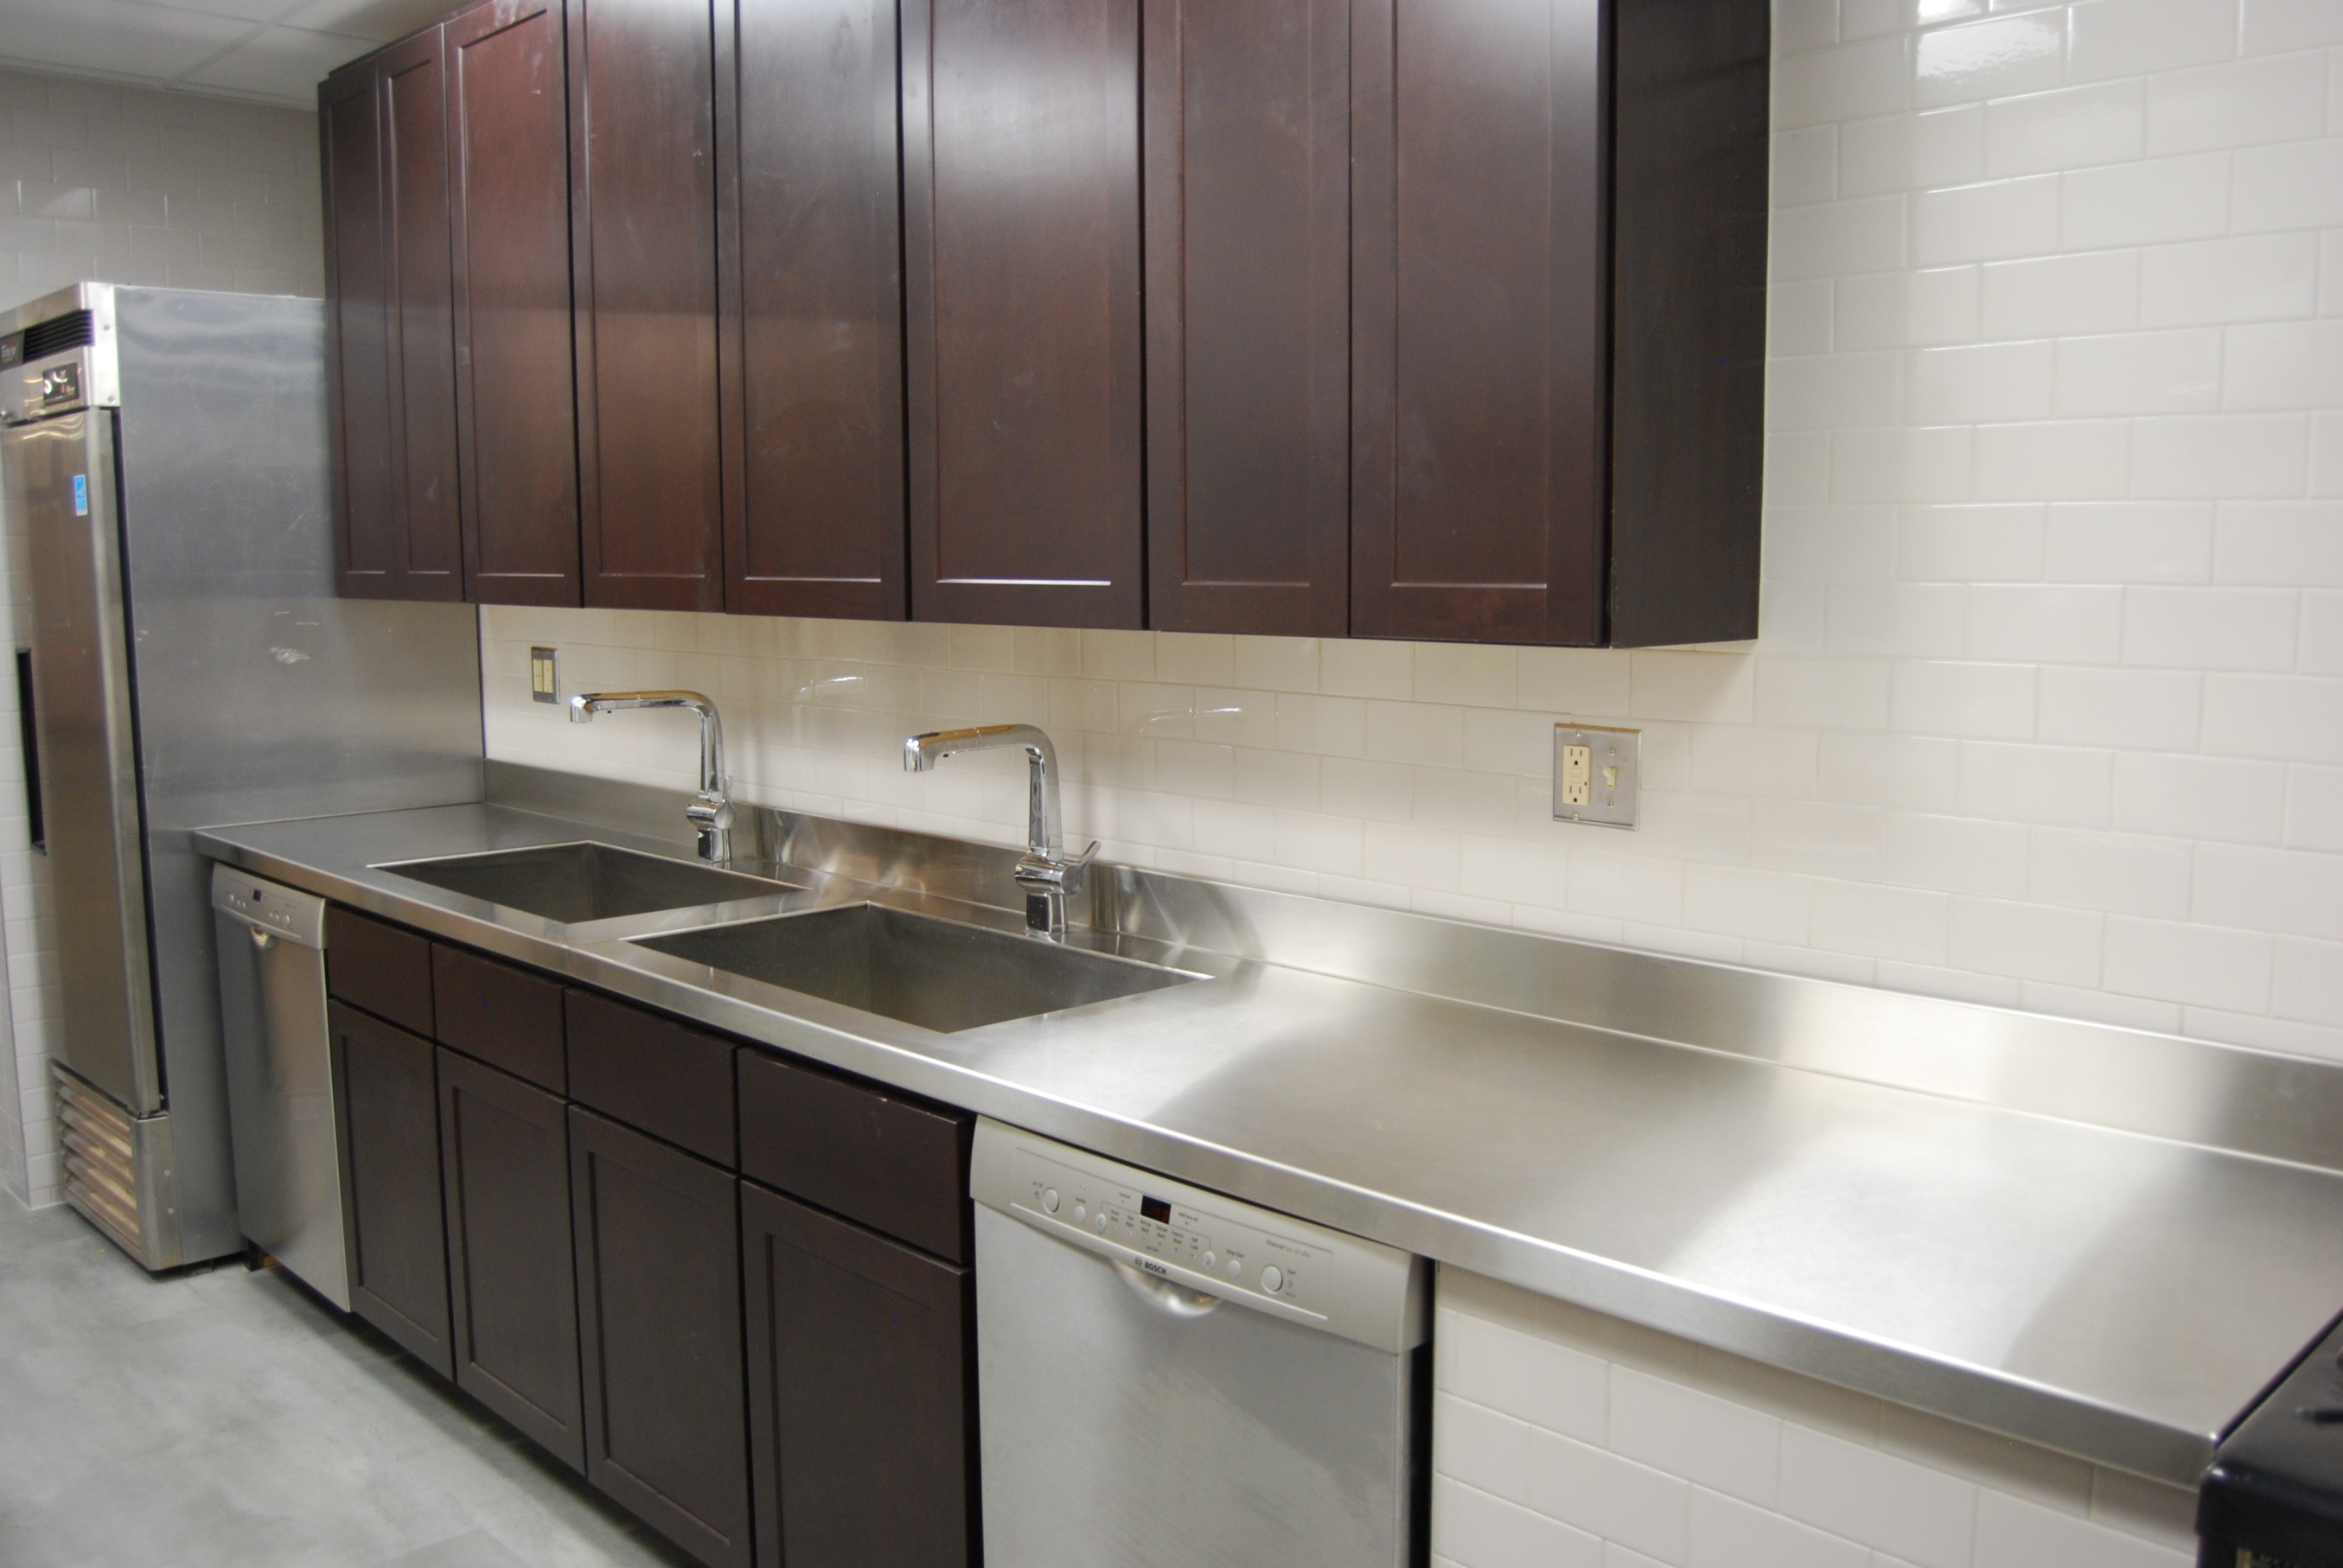 Stainless Steel Cabinets And Countertops 1000 43 Images About Stainless Steel Countertops On